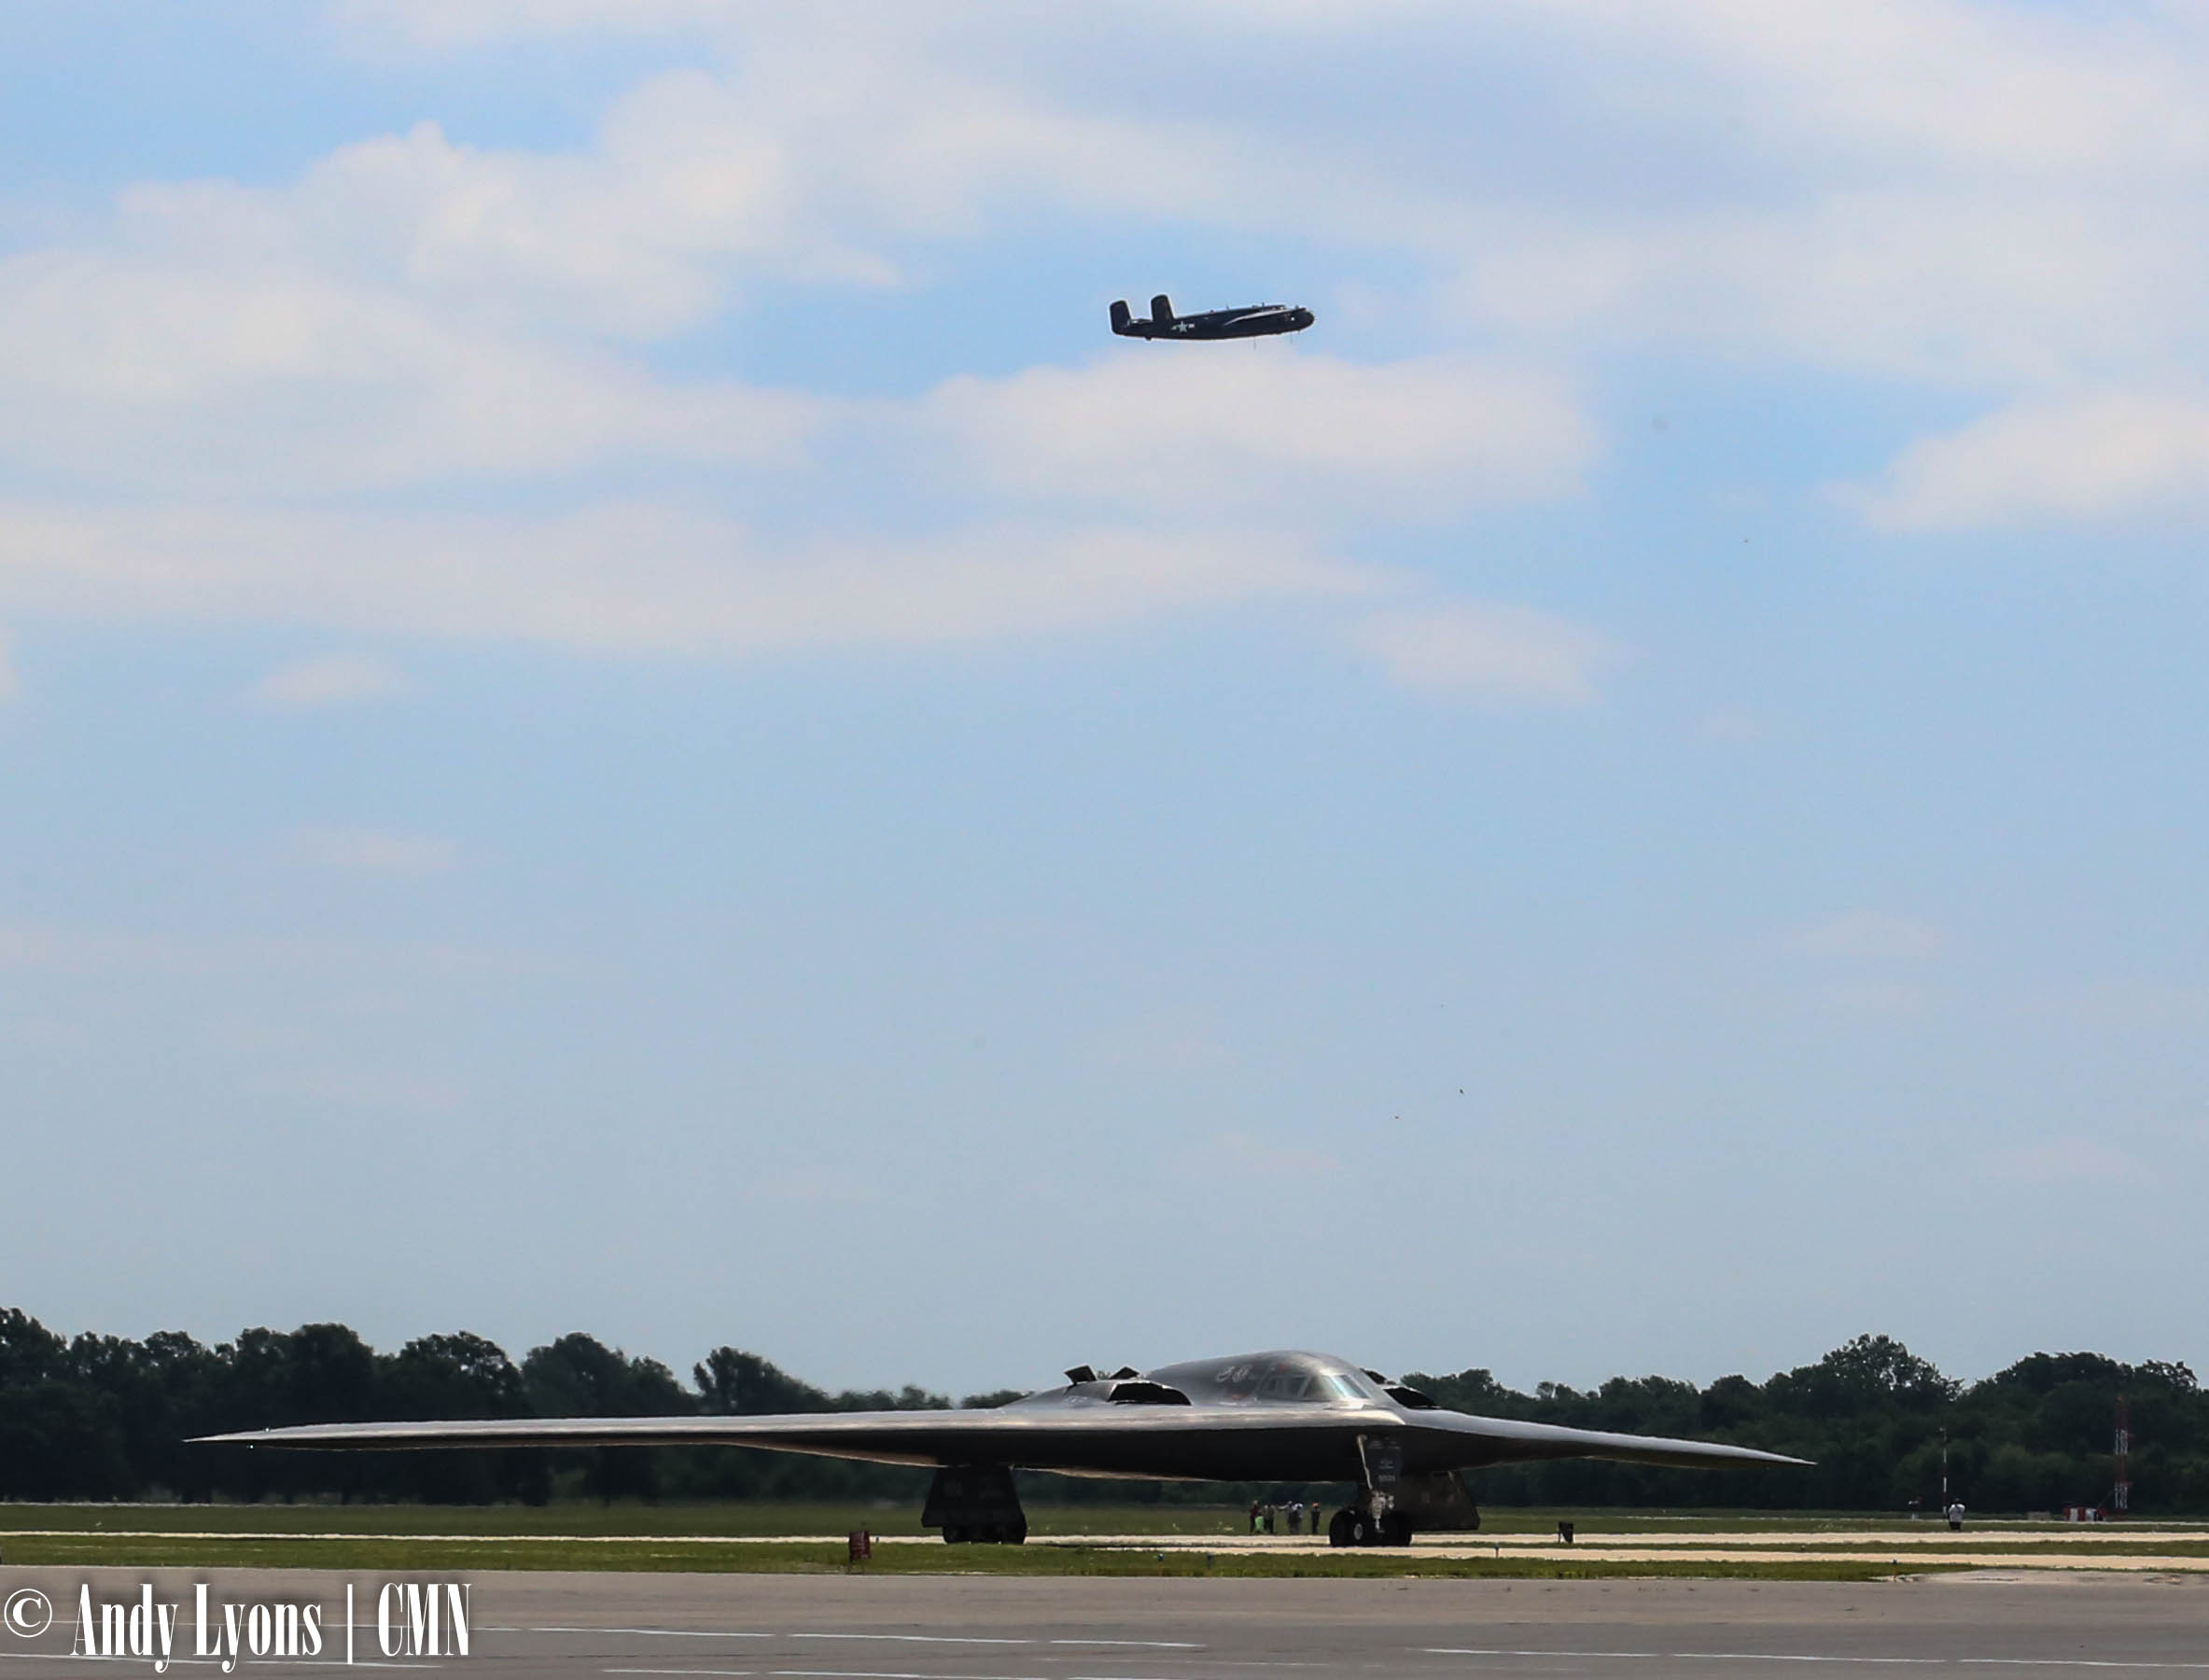 PHOTO GALLERY: Wings Over Whiteman awes with B-2 Spirit, F-16 Viper